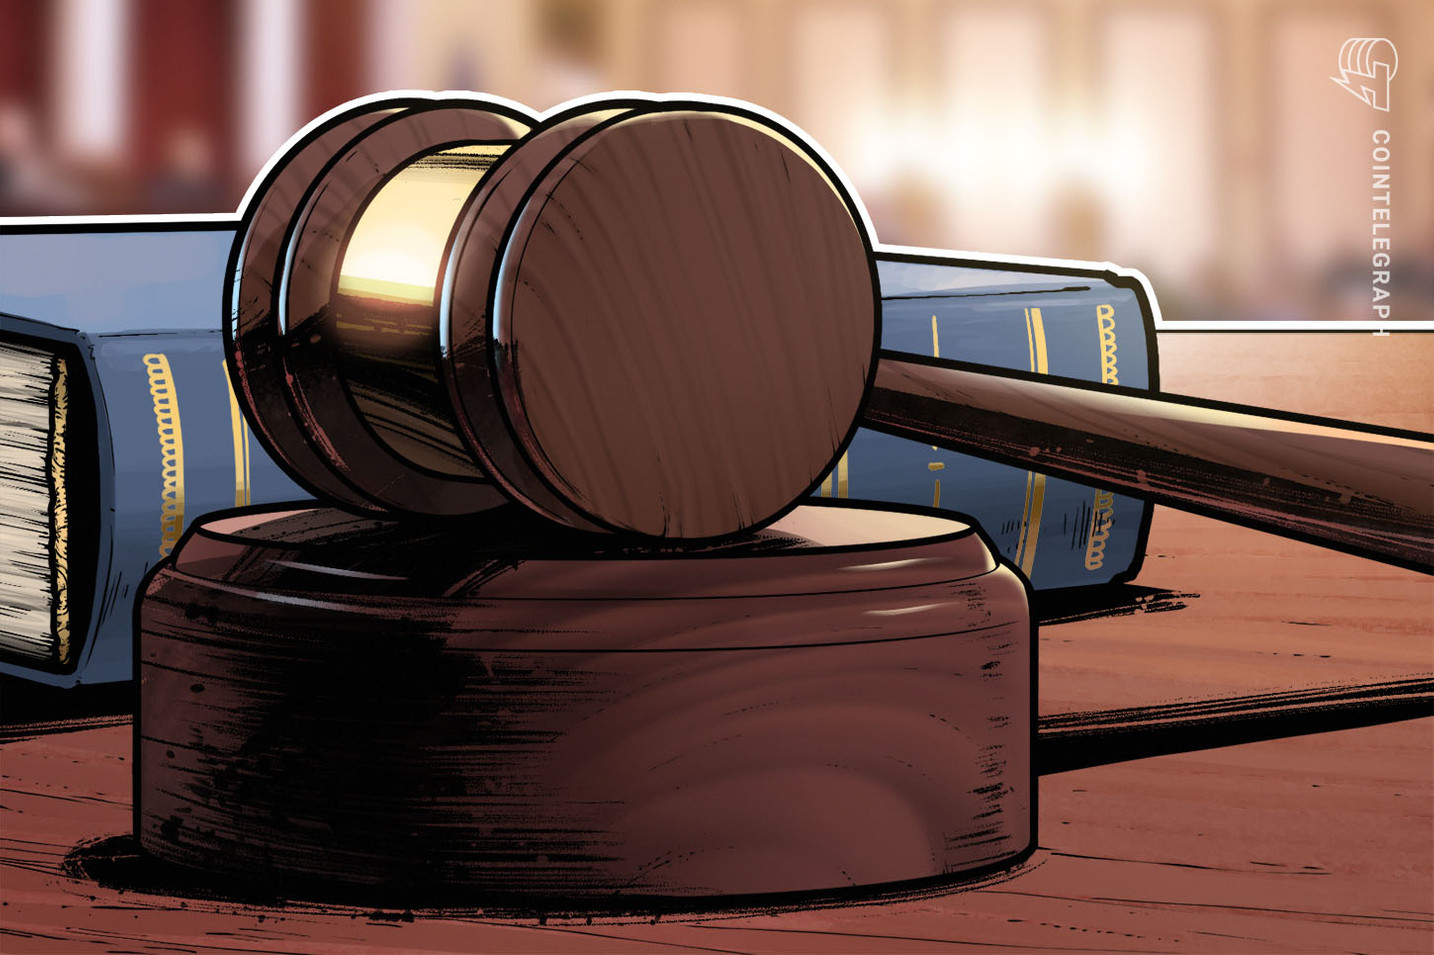 Crypto Fund Manager Sued Over Alleged Fraud and Deception